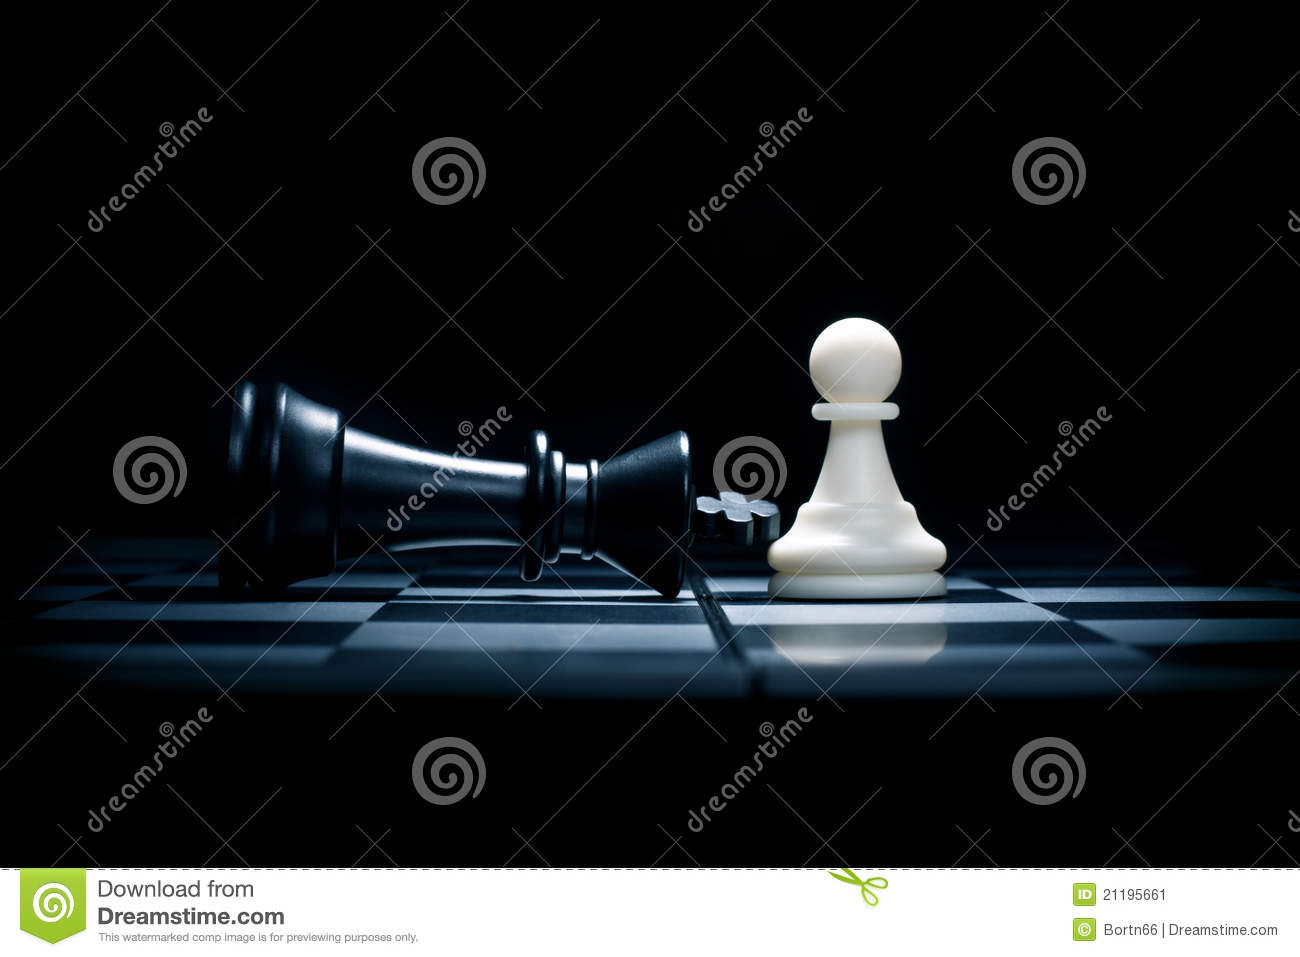 A pawn and the won king